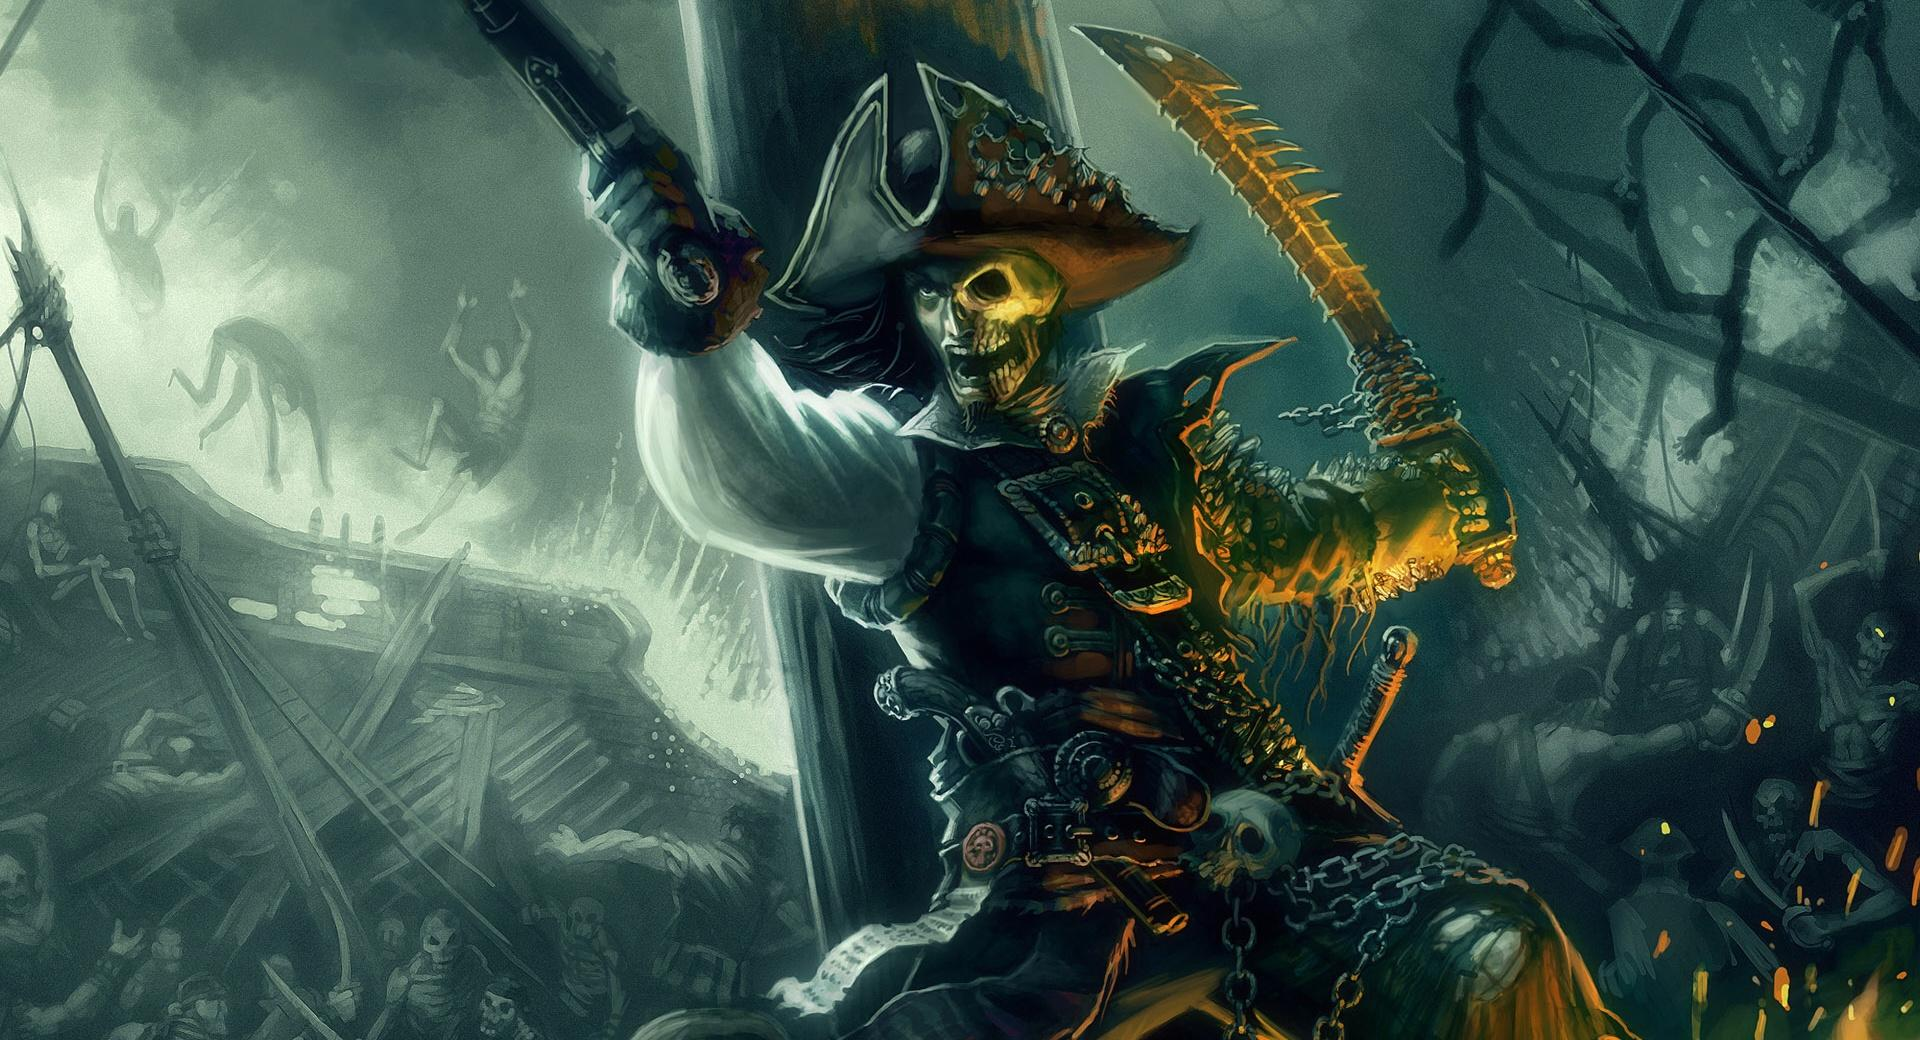 Pirate Sword Fight Painting wallpapers HD quality